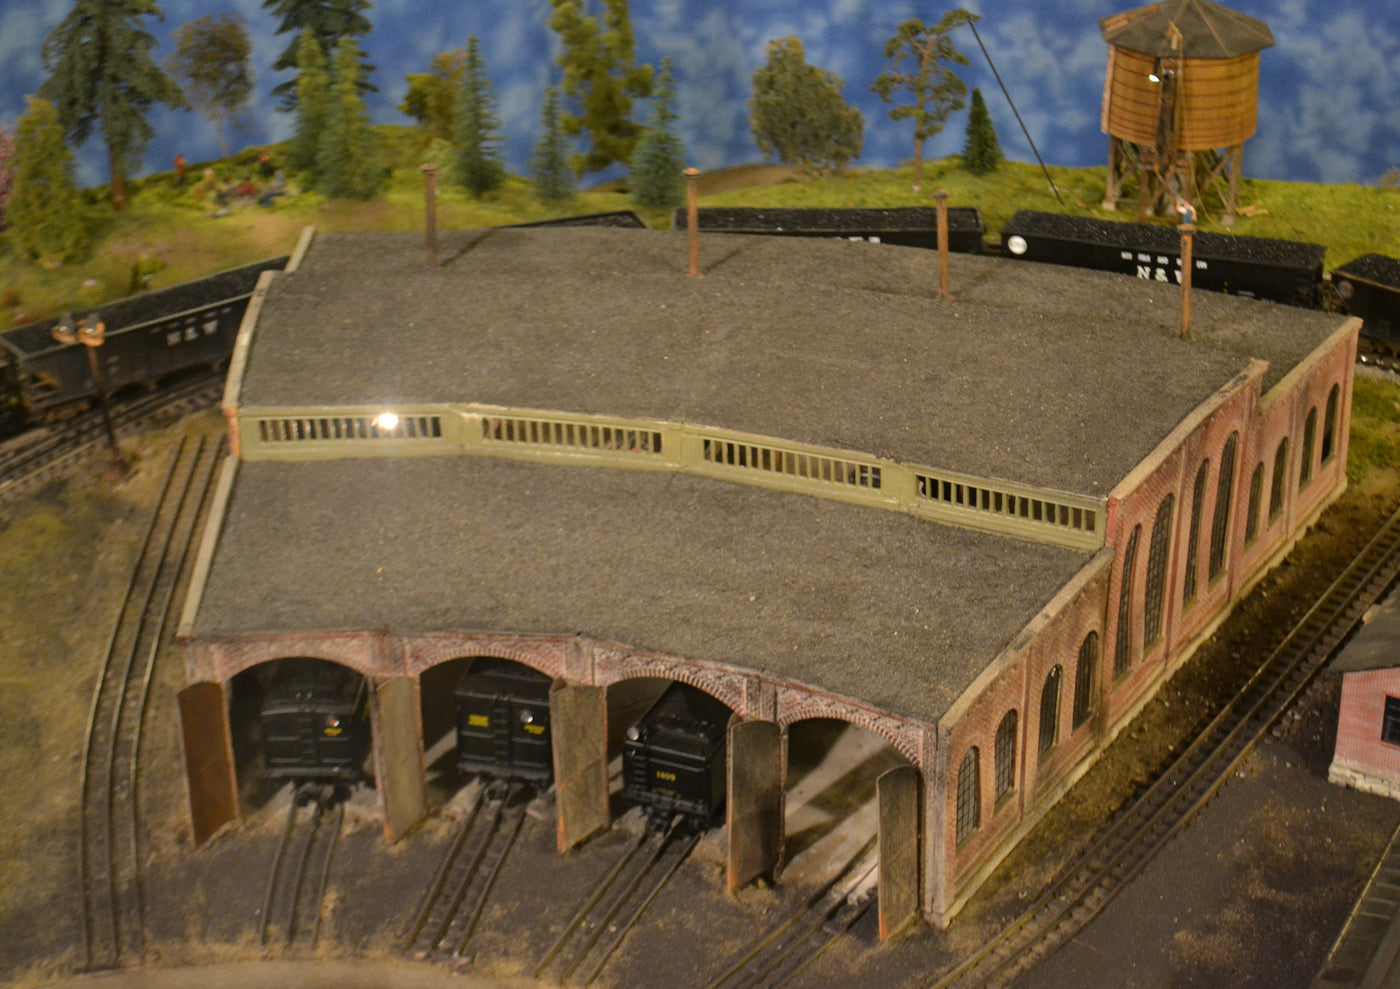 Korber Models #304 - O Scale - 3 Stall Roundhouse Kit on lionel train track layout plans, railroad yards in chicago, railroad structure plans, railroad stations, walthers track plans, railroad roundhouses missouri, railroad engine shed plans, railroad shops, railroad roundhouses chicago, railroad roundhouses in ohio, o gauge turntable plans, railroad turntable, railroad yard design, ho scale turntable plans, railroad tracks, railroad water tower plans, 4x8 ho track plans, on30 track plans,